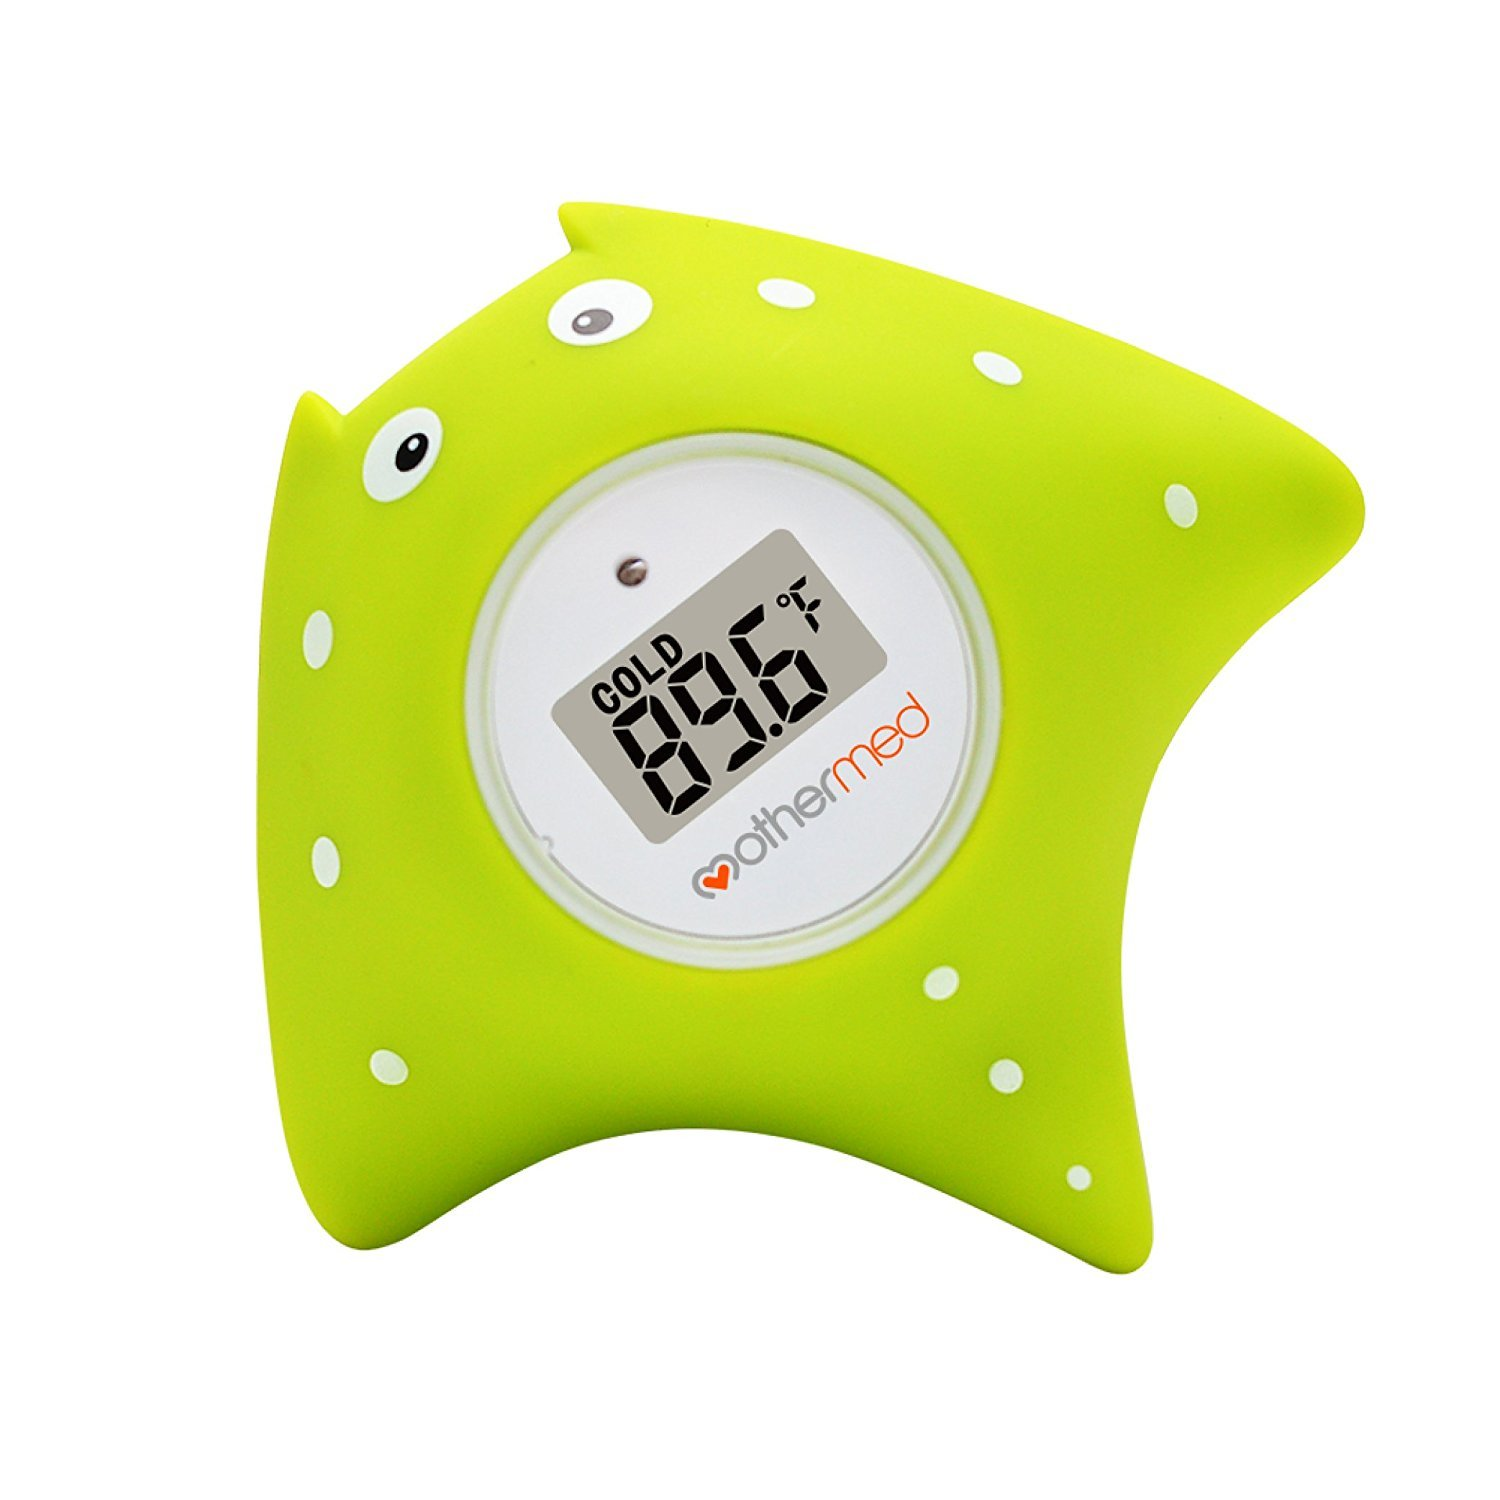 MotherMed Baby Bath Thermometer and Floating Bath Toy BathTub and Swimming Pool Thermometer, Green Fish